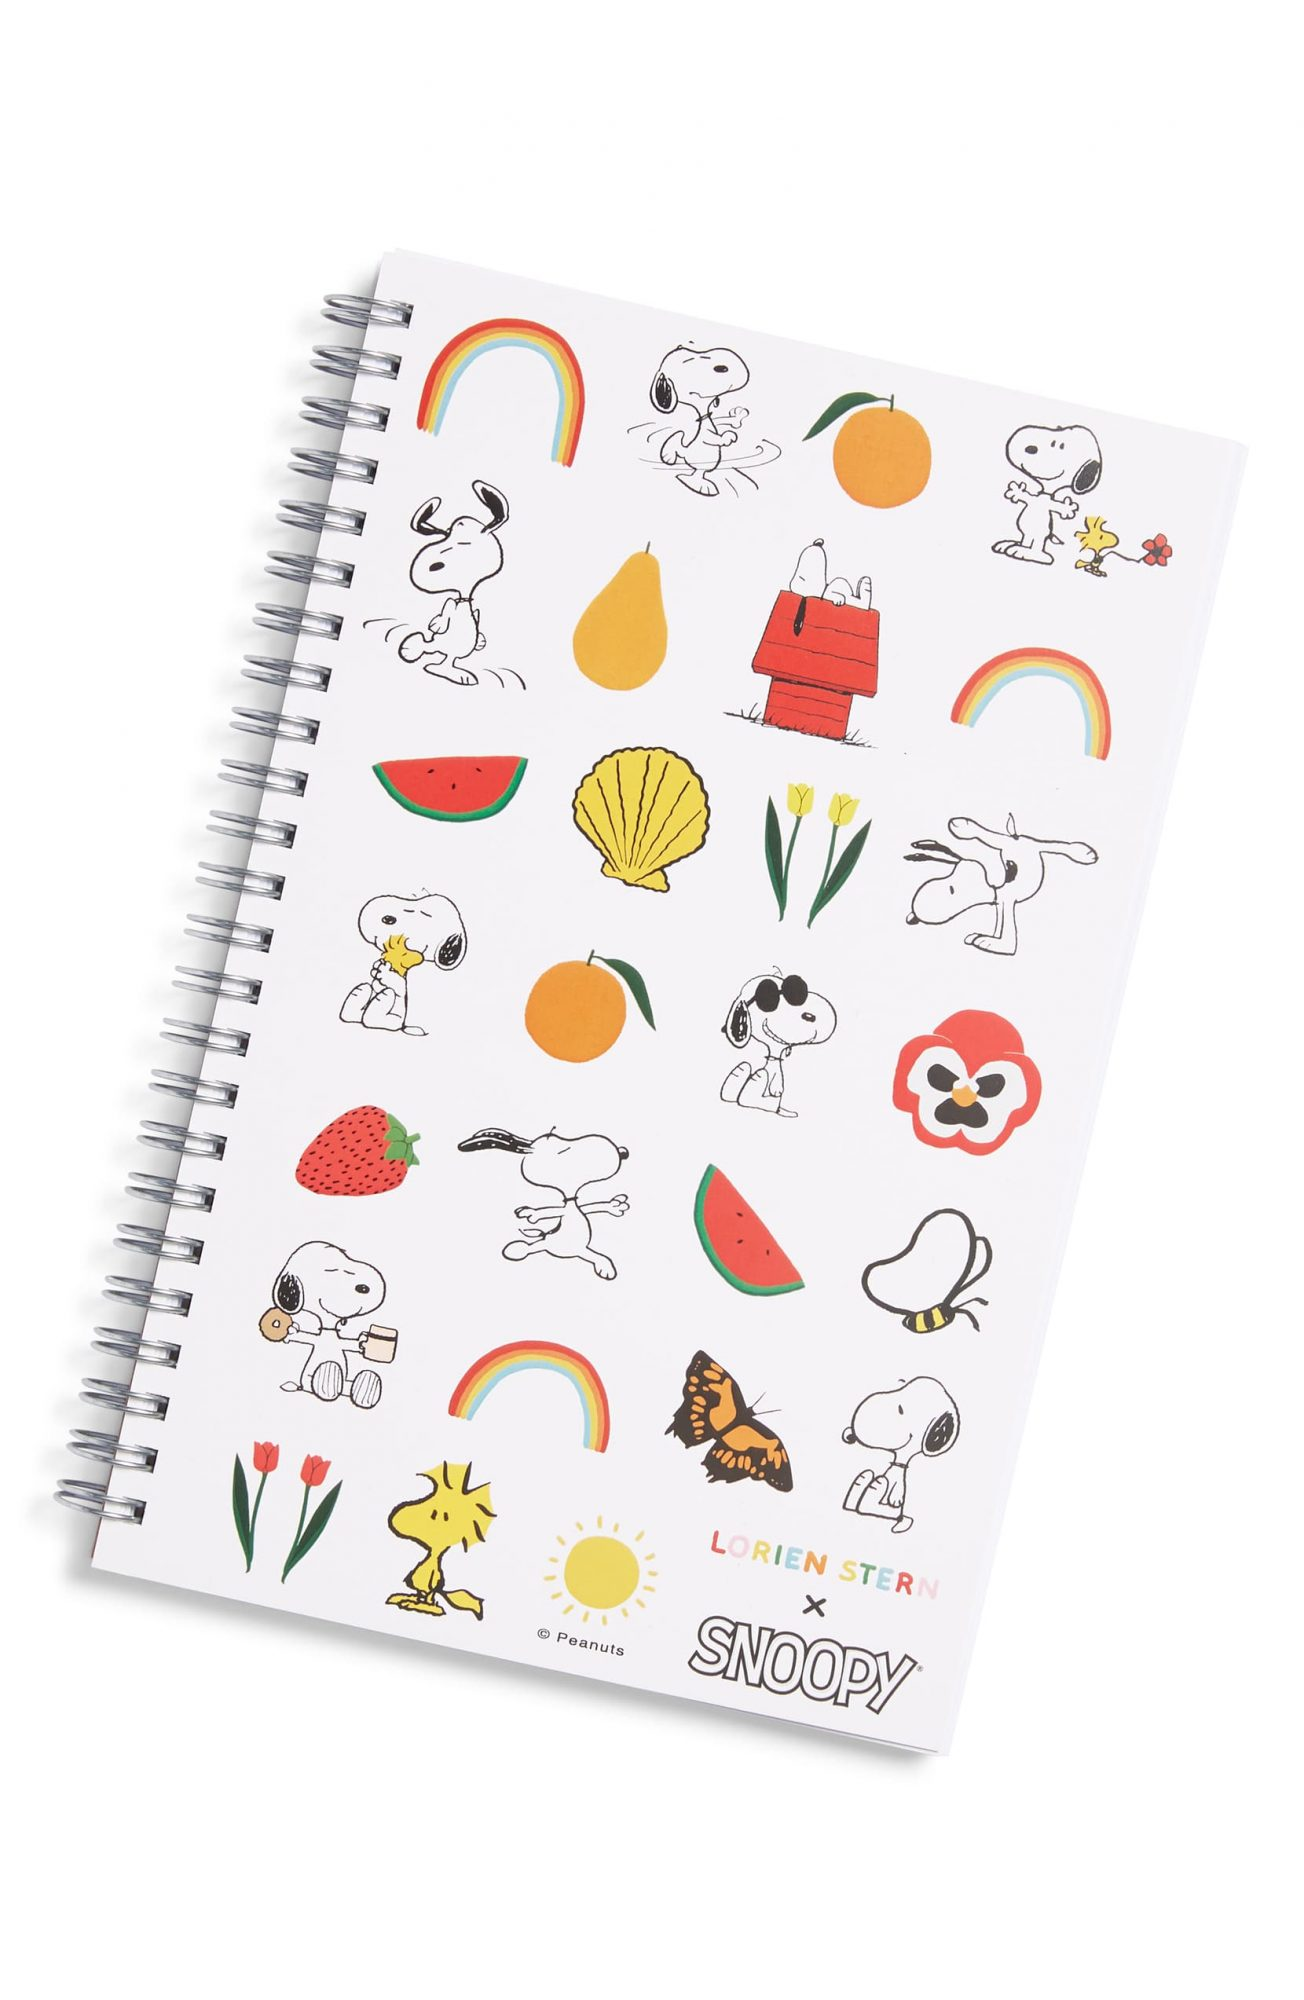 Lorien Stern x Peanuts Snoopy Spiral Notebook at Nordstrom